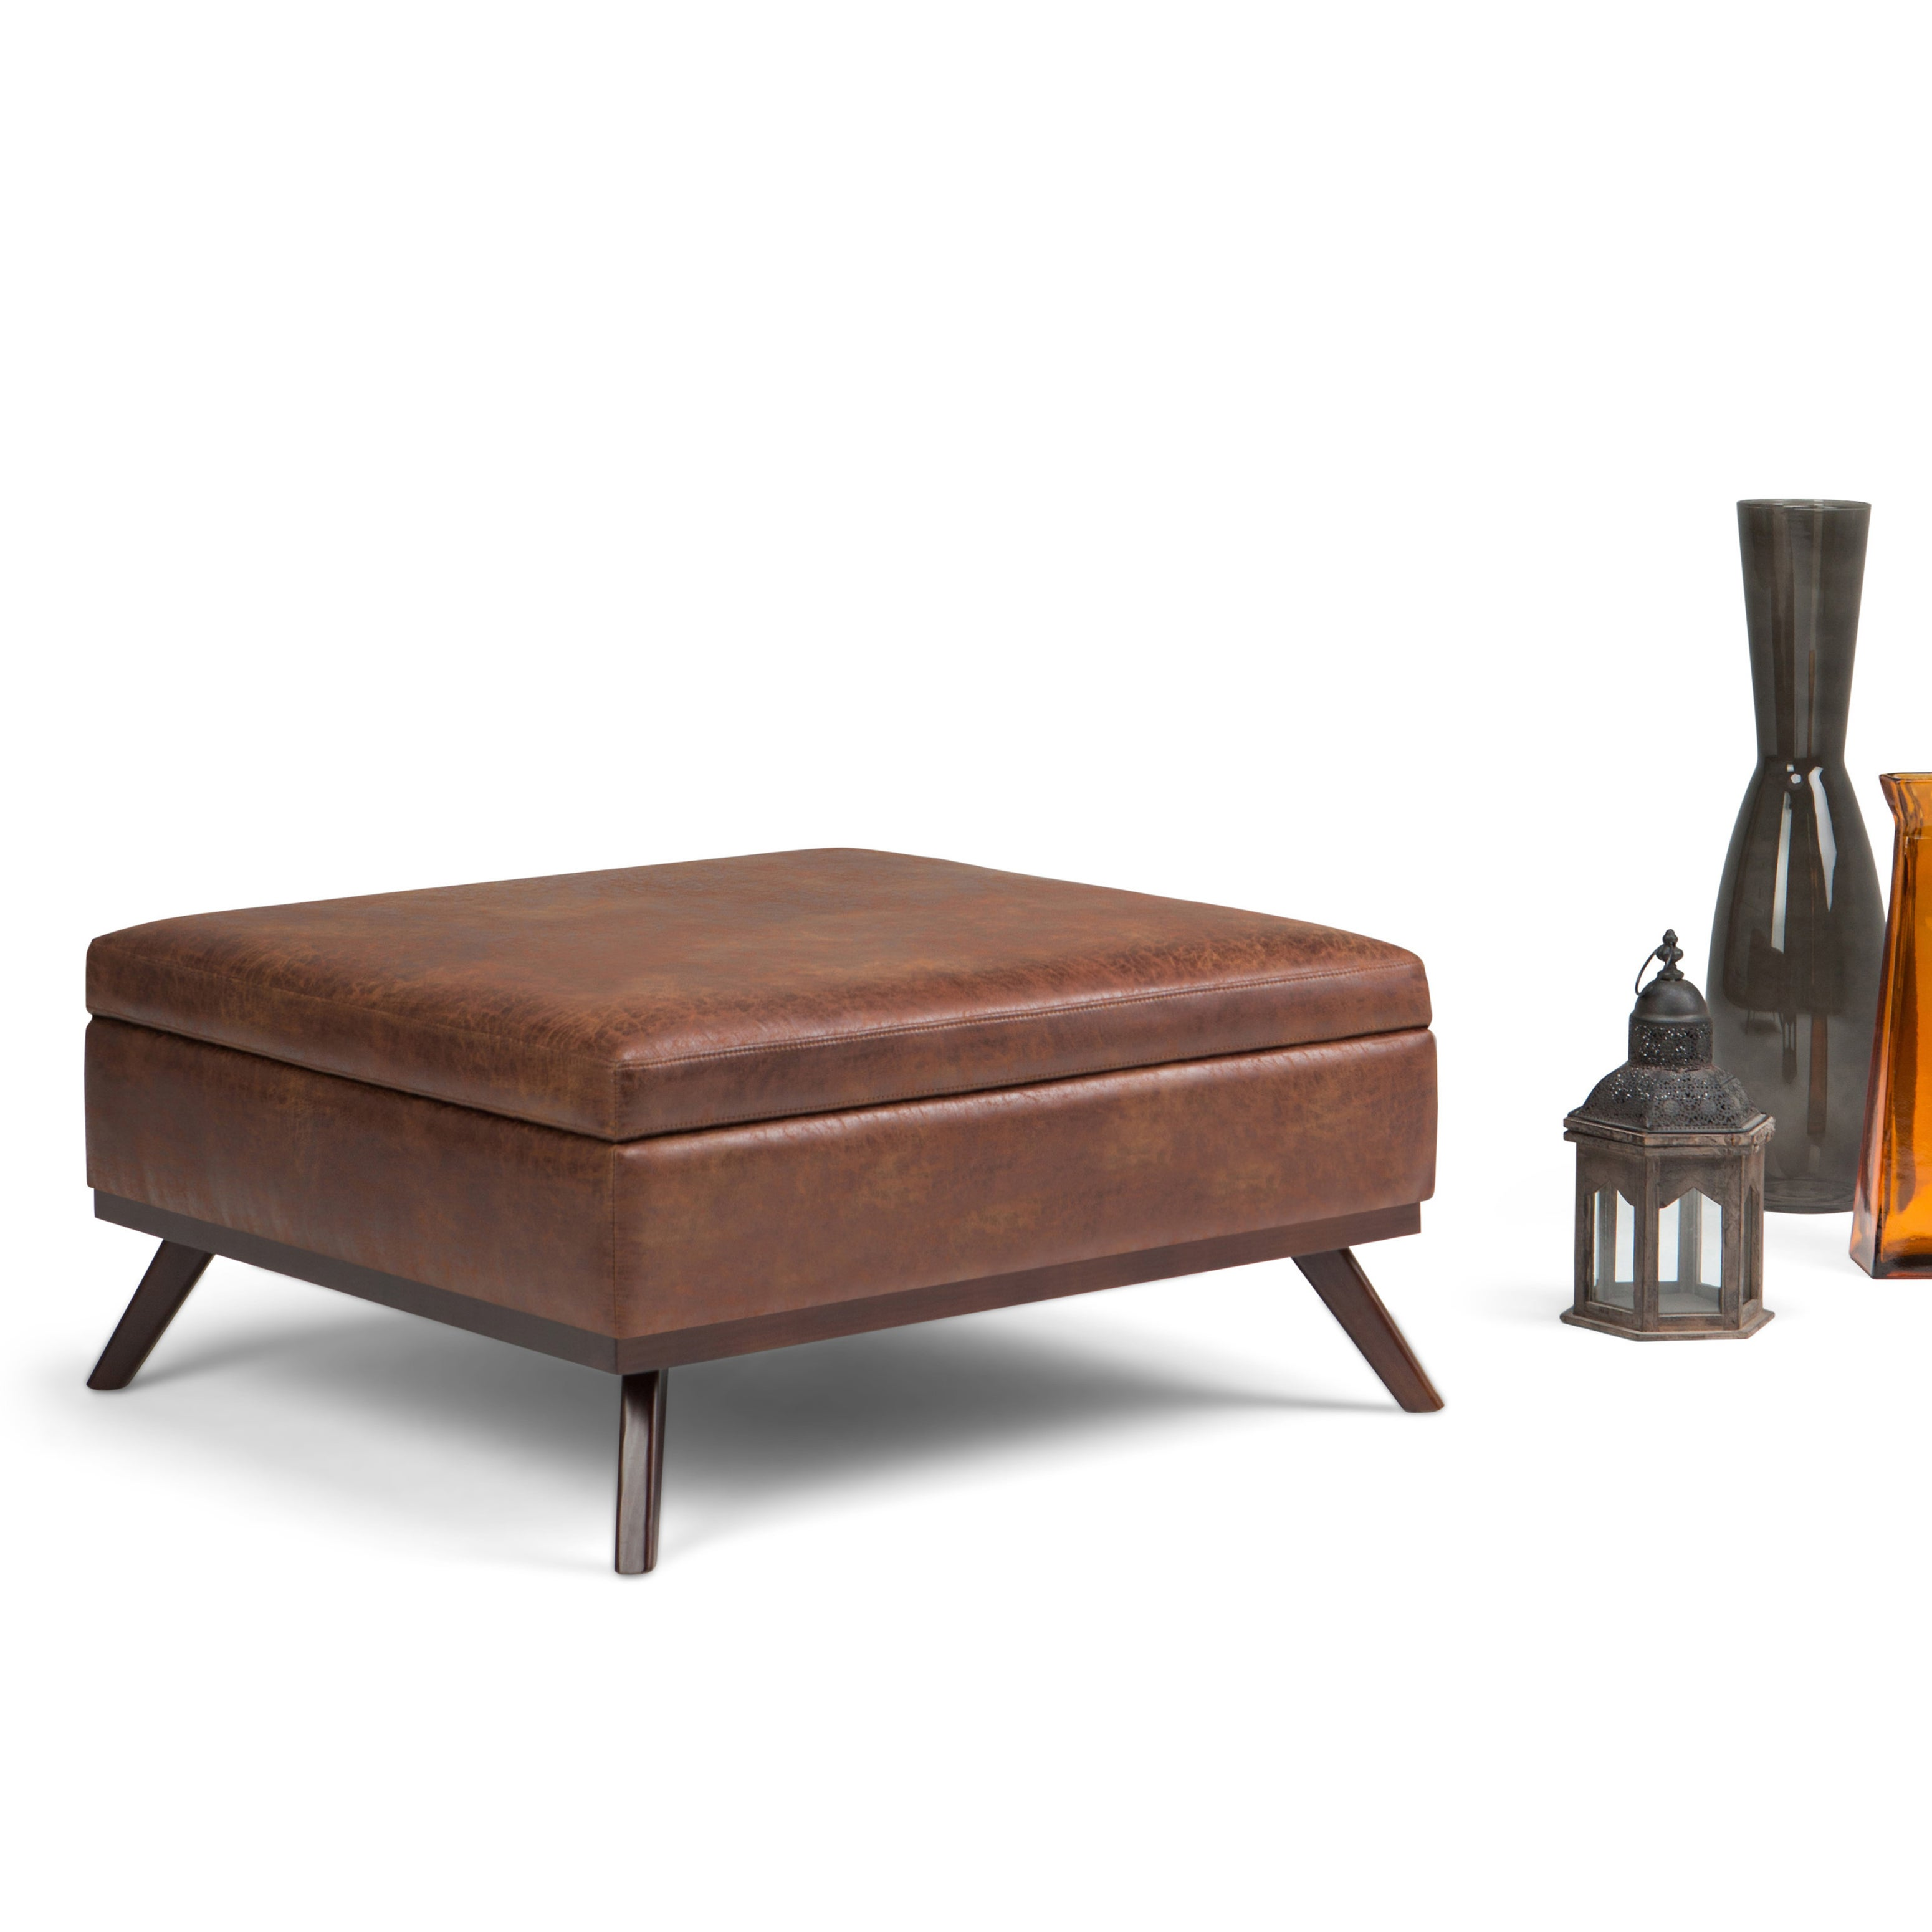 wyndenhall ethan large mid century square coffee table ottoman with storage ebay. Black Bedroom Furniture Sets. Home Design Ideas